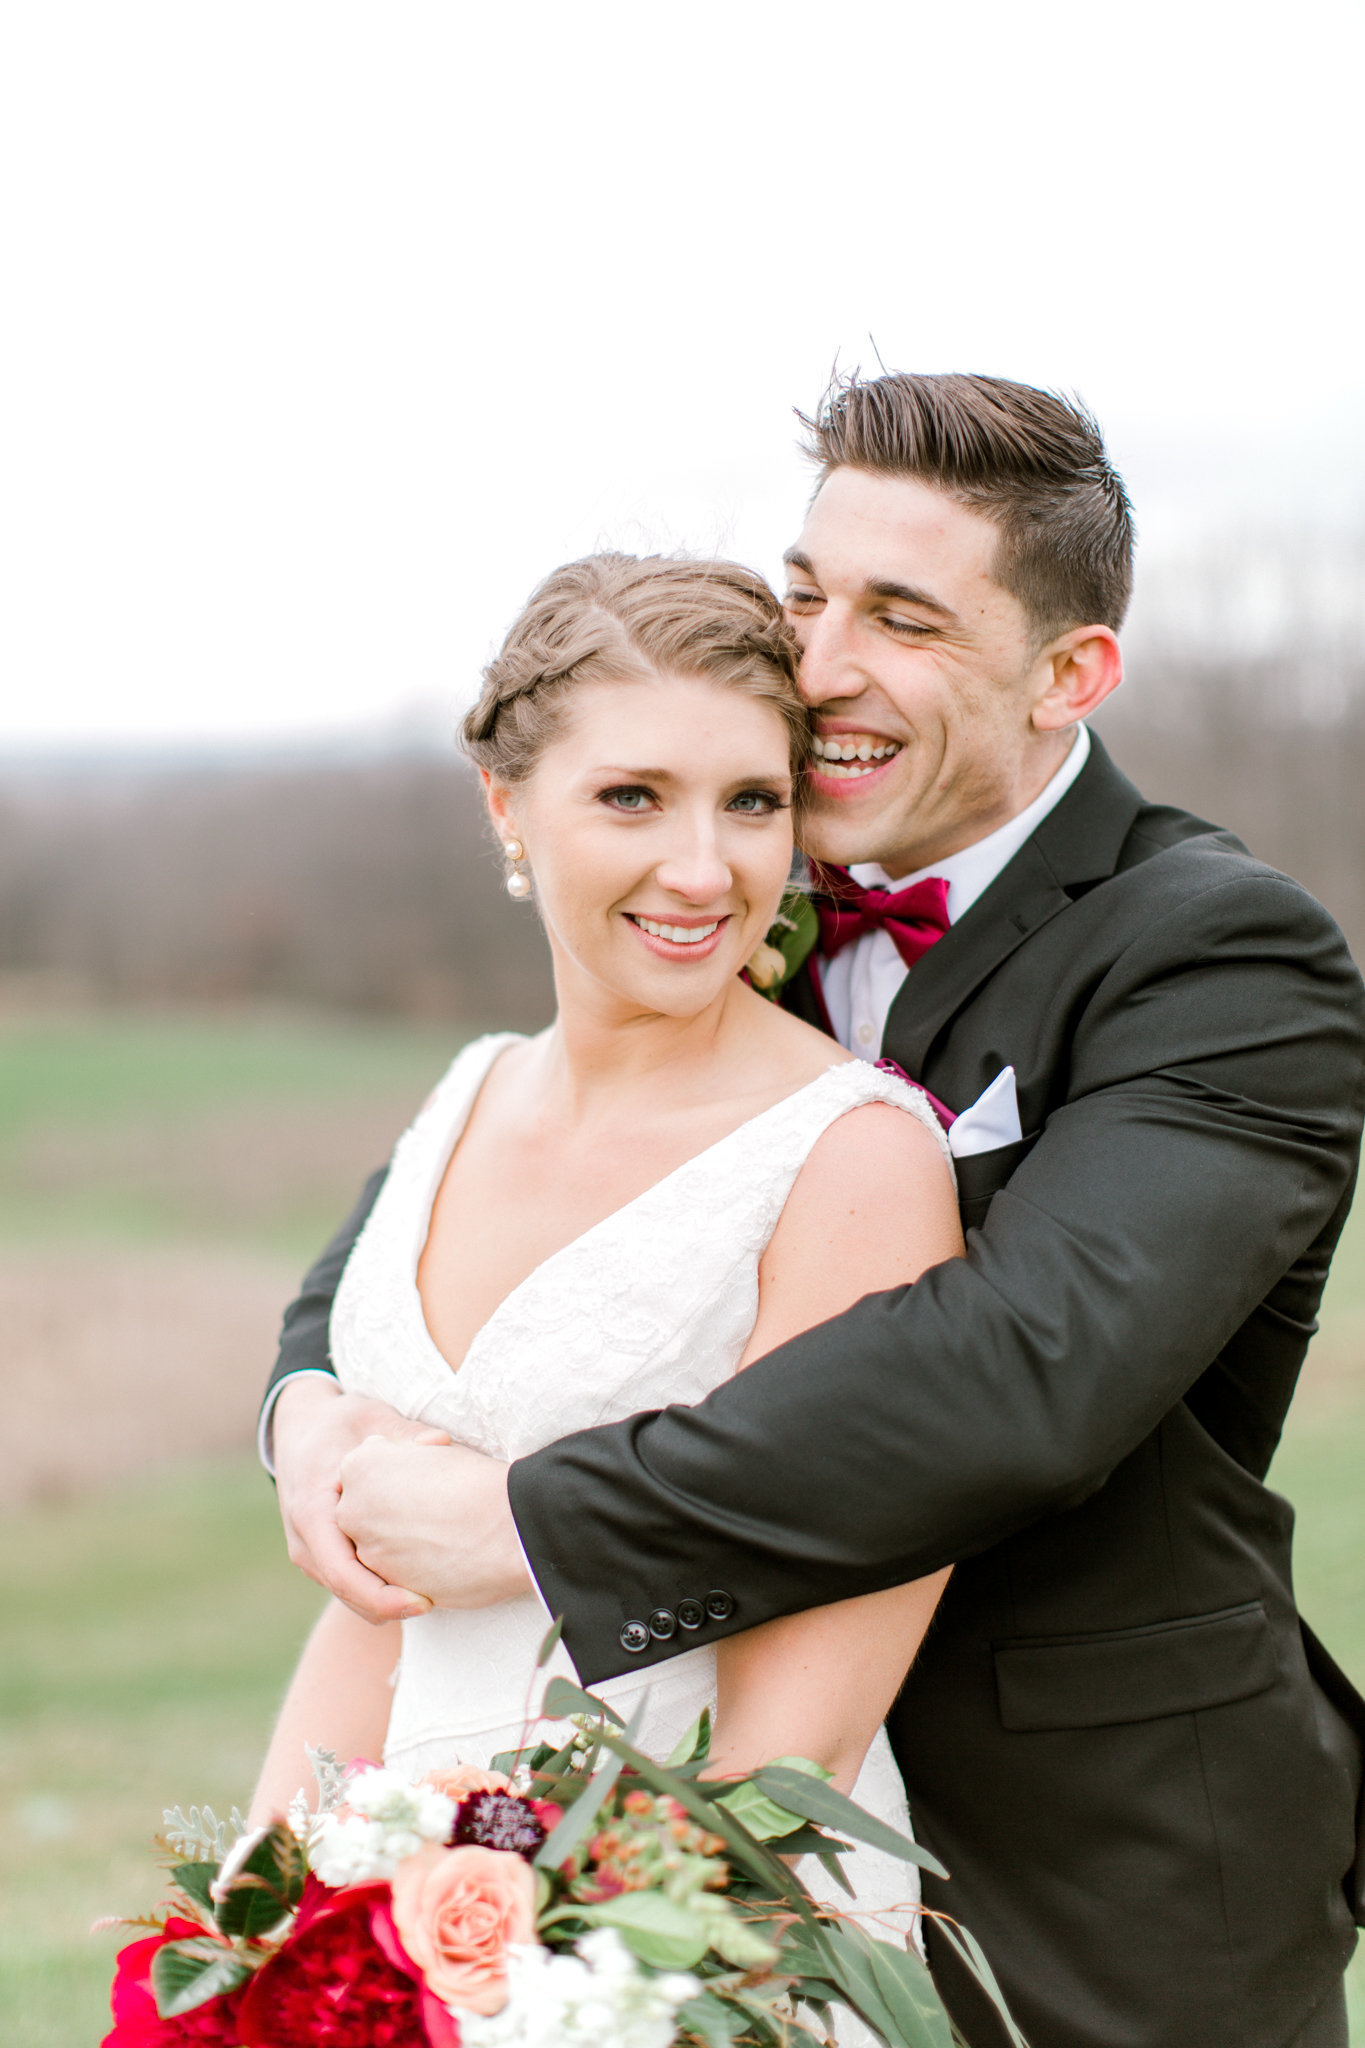 cleveland wedding photographers Austin and rachel -9282